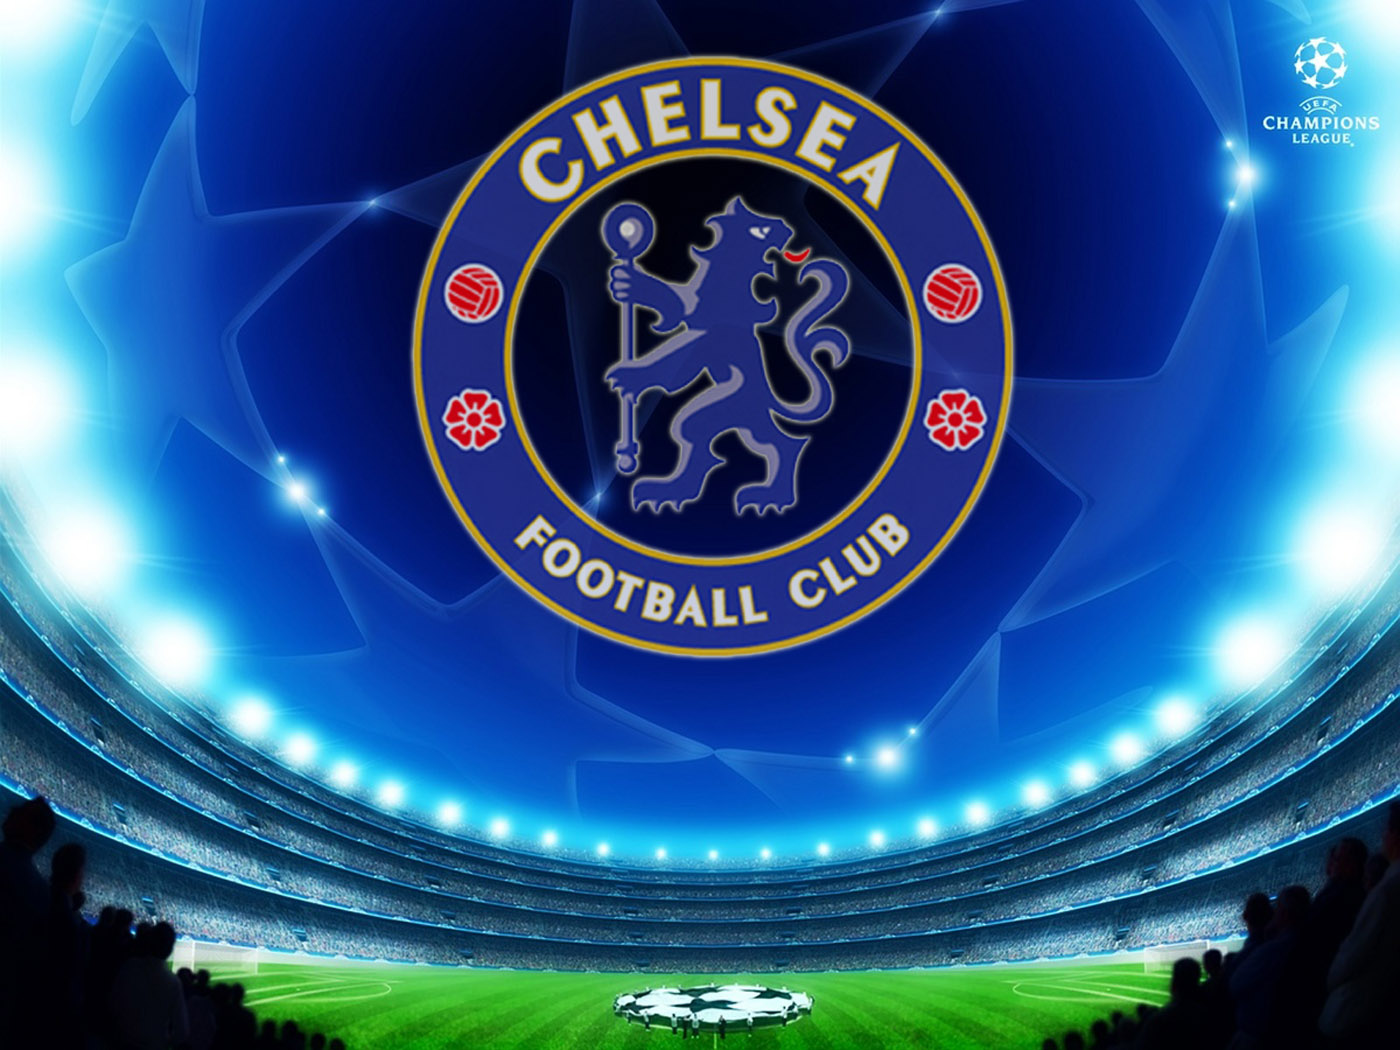 Chelsea Football Club HD Wallpapers 2013-2014 - All About